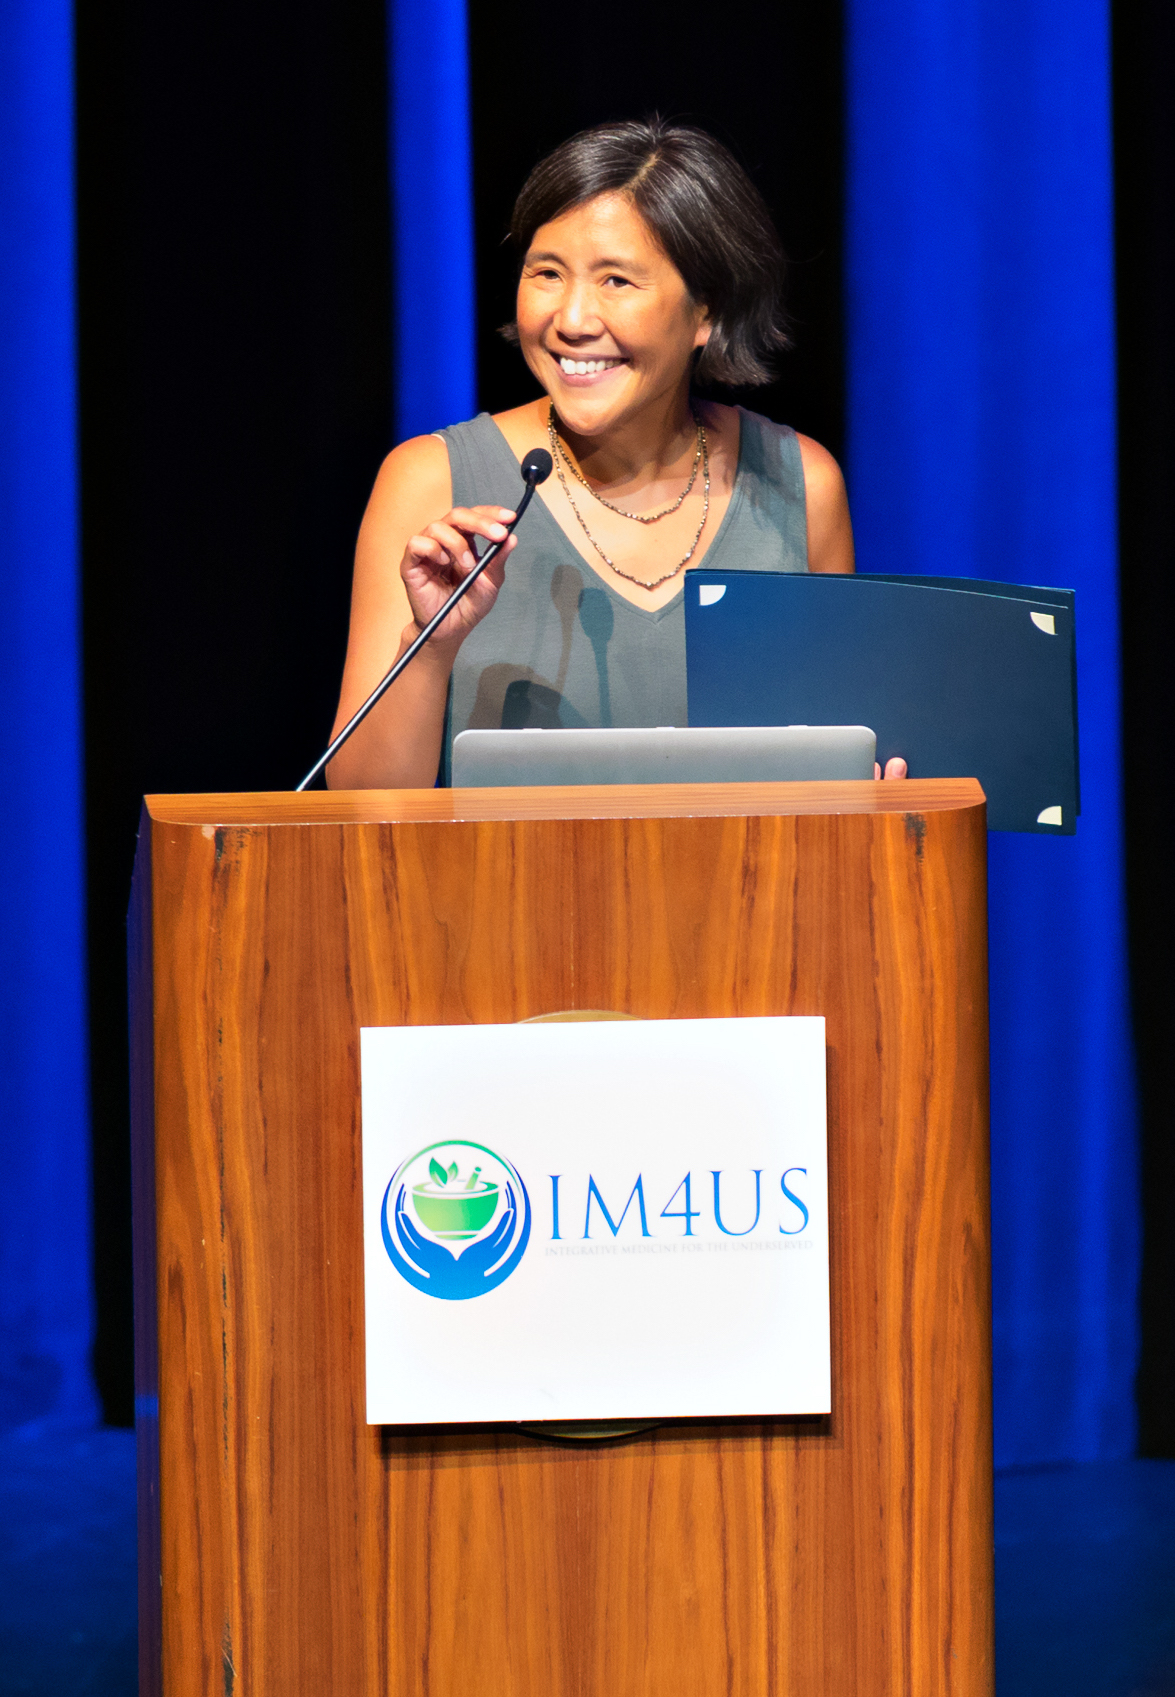 Dr. Maria Chao welcoming IM4US attendees. Photo by Kathleen Harrison.